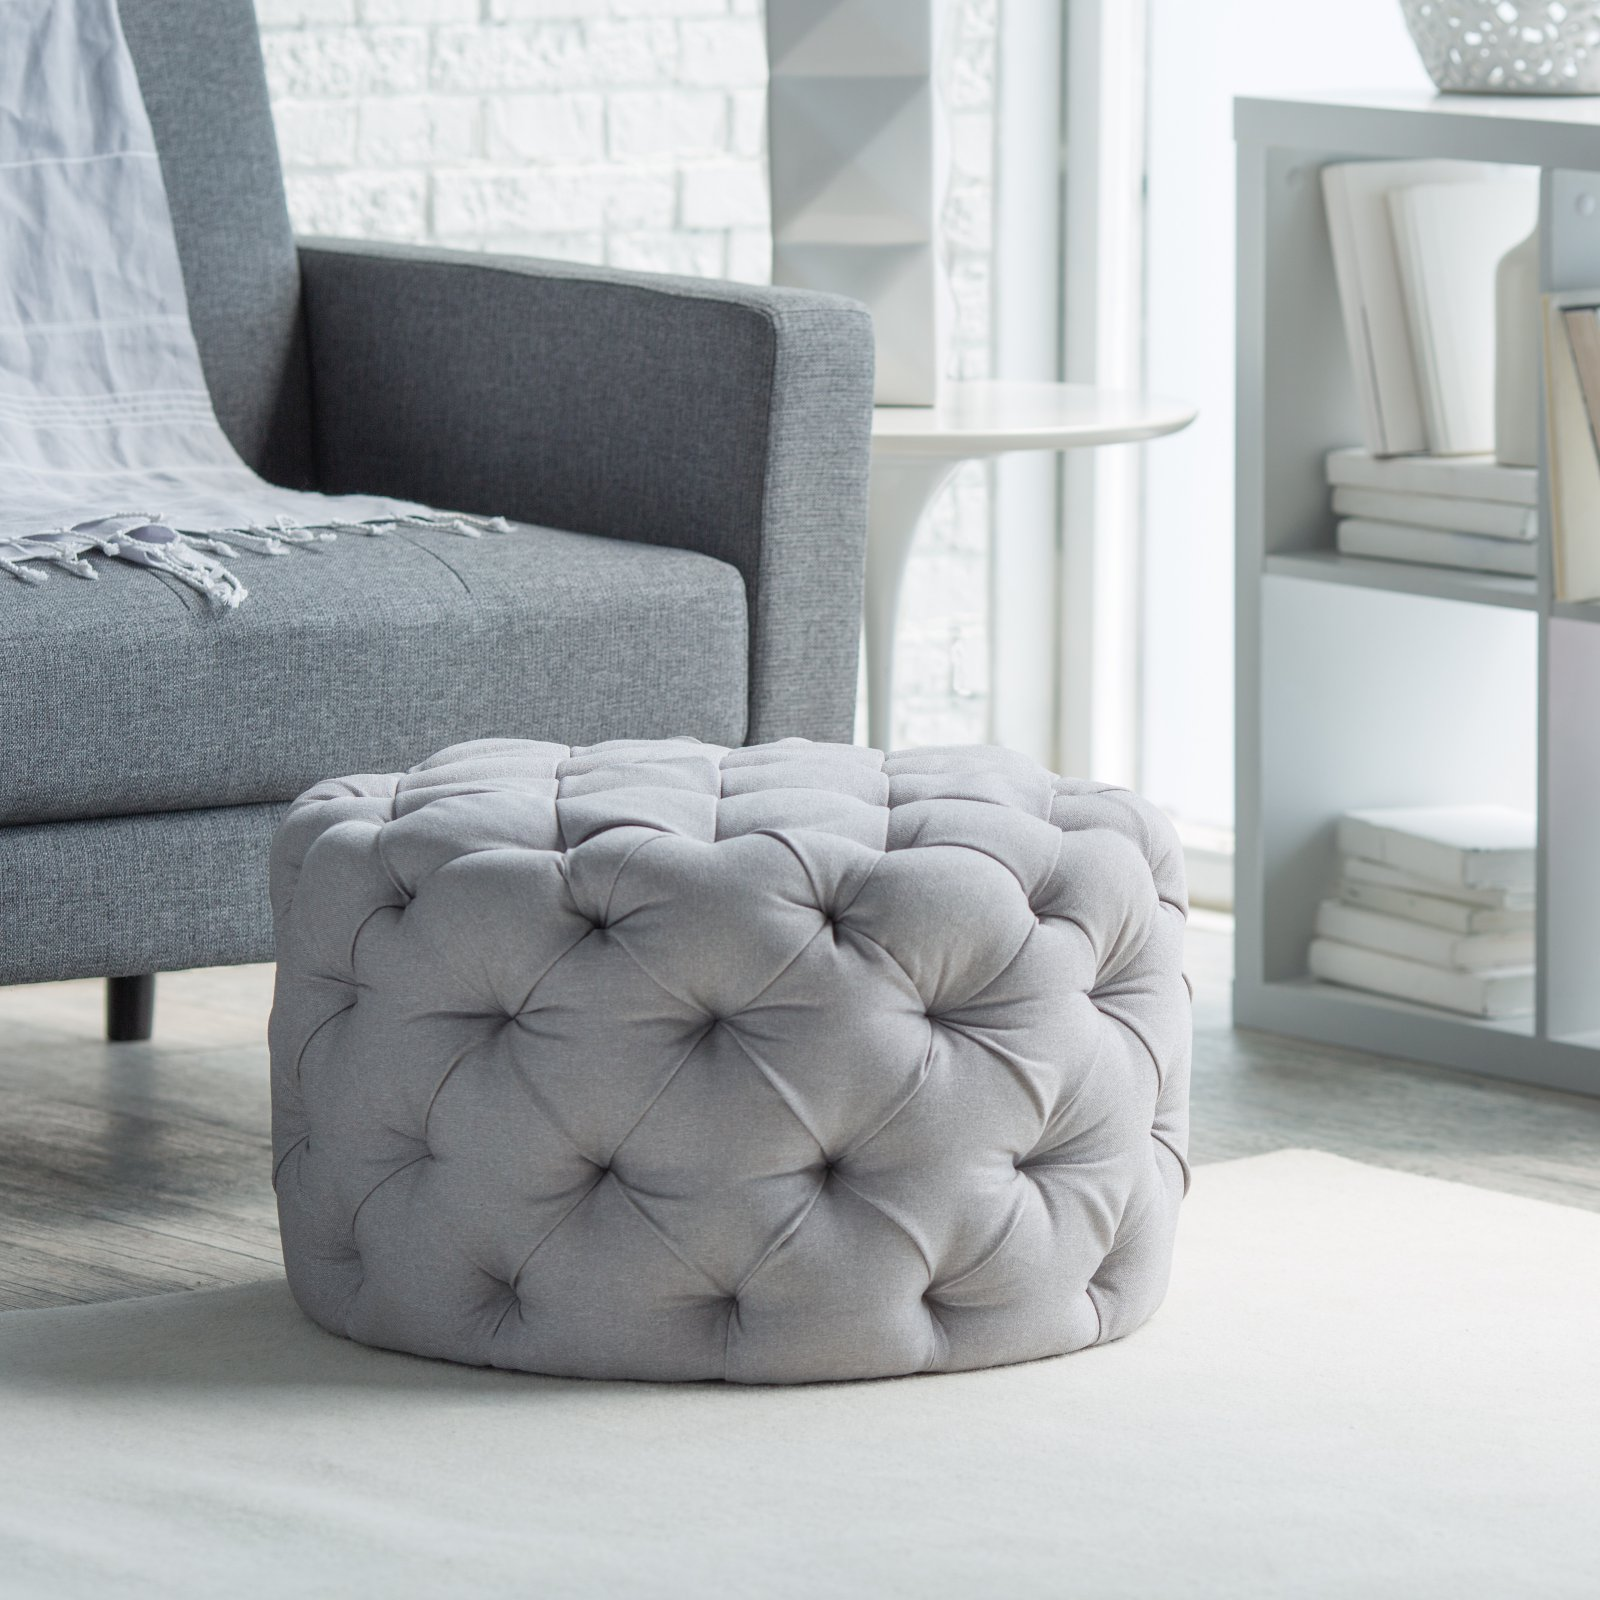 Belham Living Allover Round Tufted Ottoman Grey by